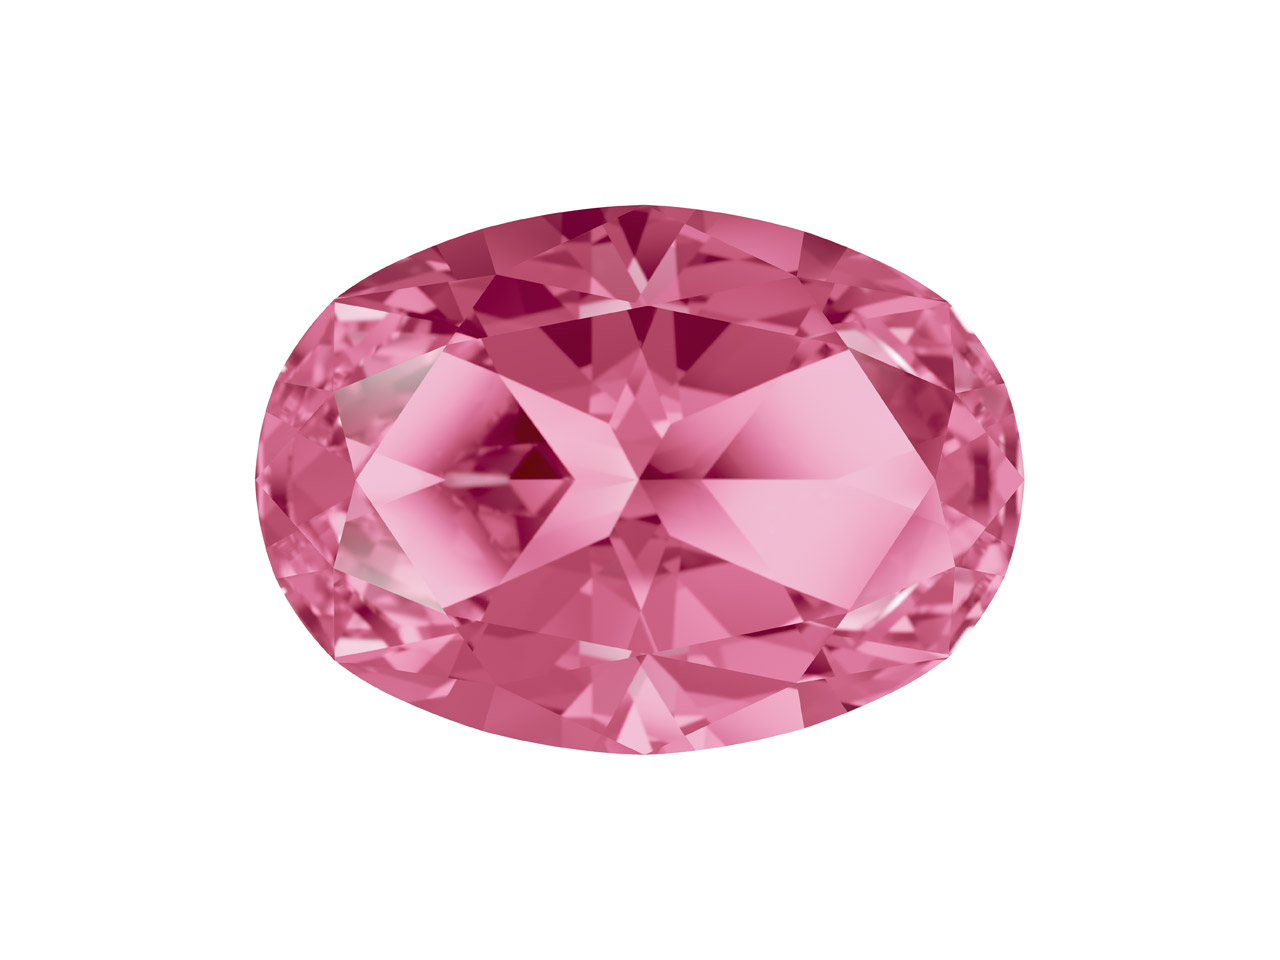 Swarovski Gemstones Genuine Topaz  Oval Star Cut 8x6mm Pink